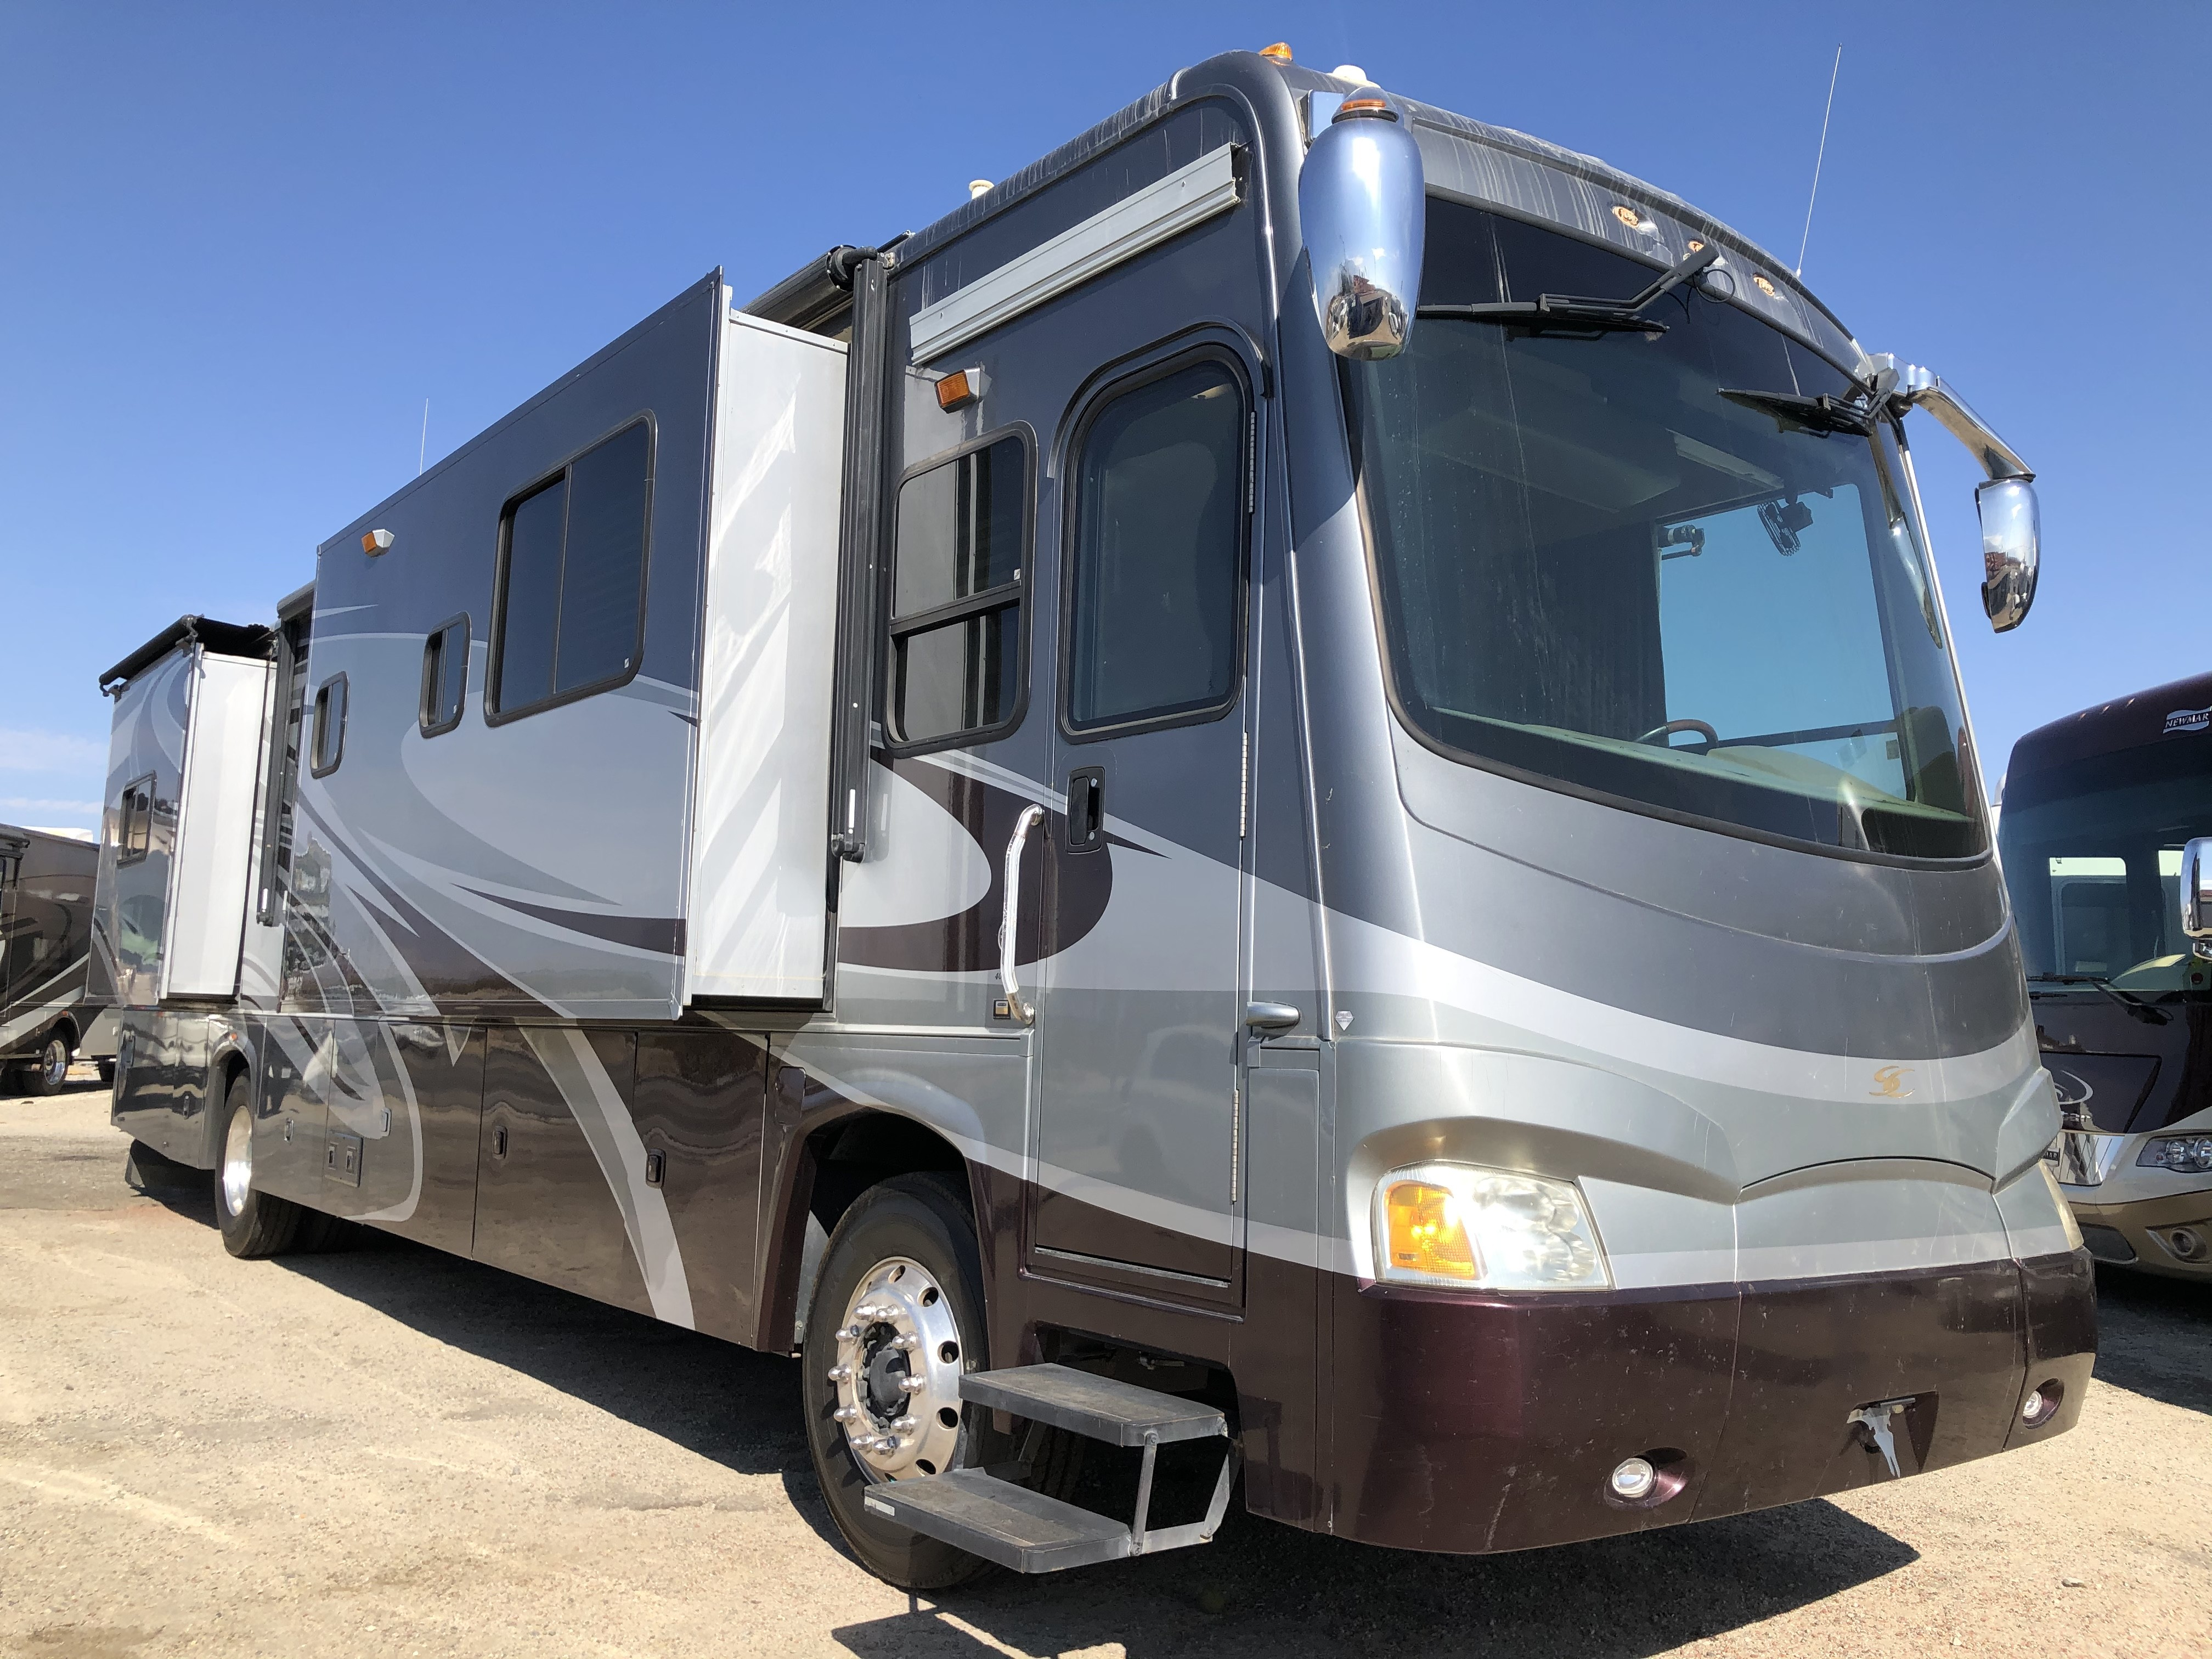 Used, 2006, Sportscoach, Legend 40QS, RV - Class A